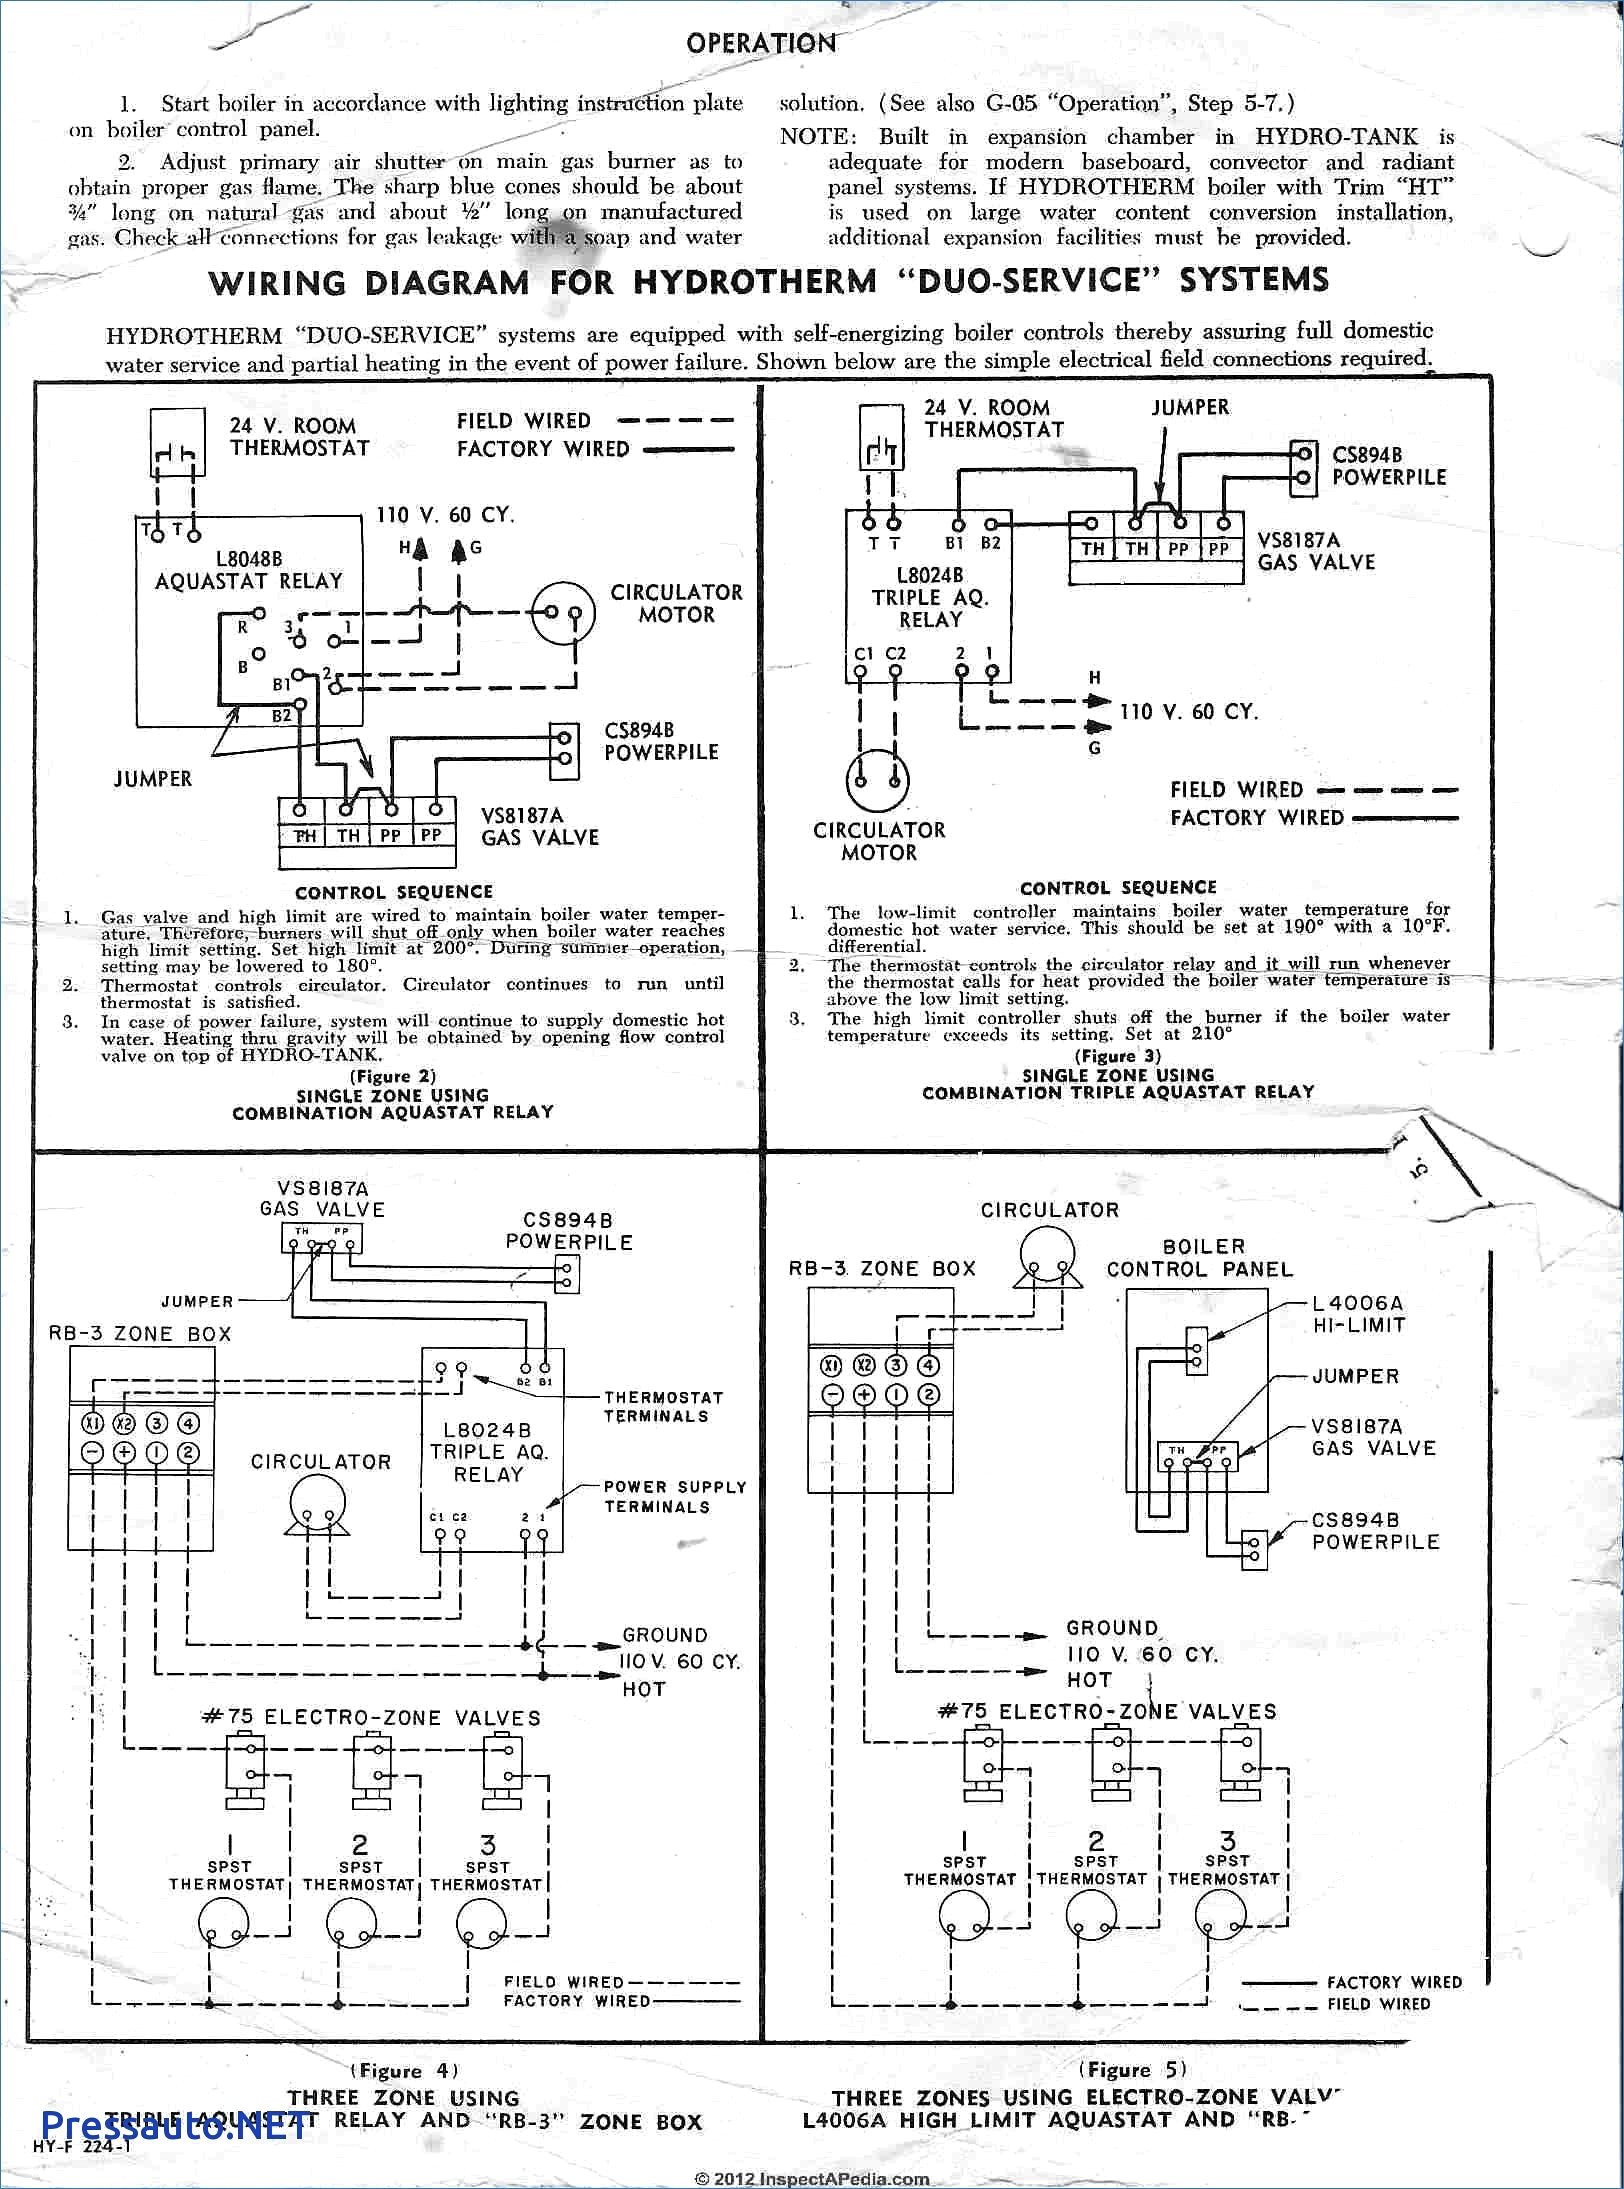 square d mcc bucket wiring diagram Download-stunning square d motor control center wiring diagram pictures and rh releaseganji net square d model 1-l